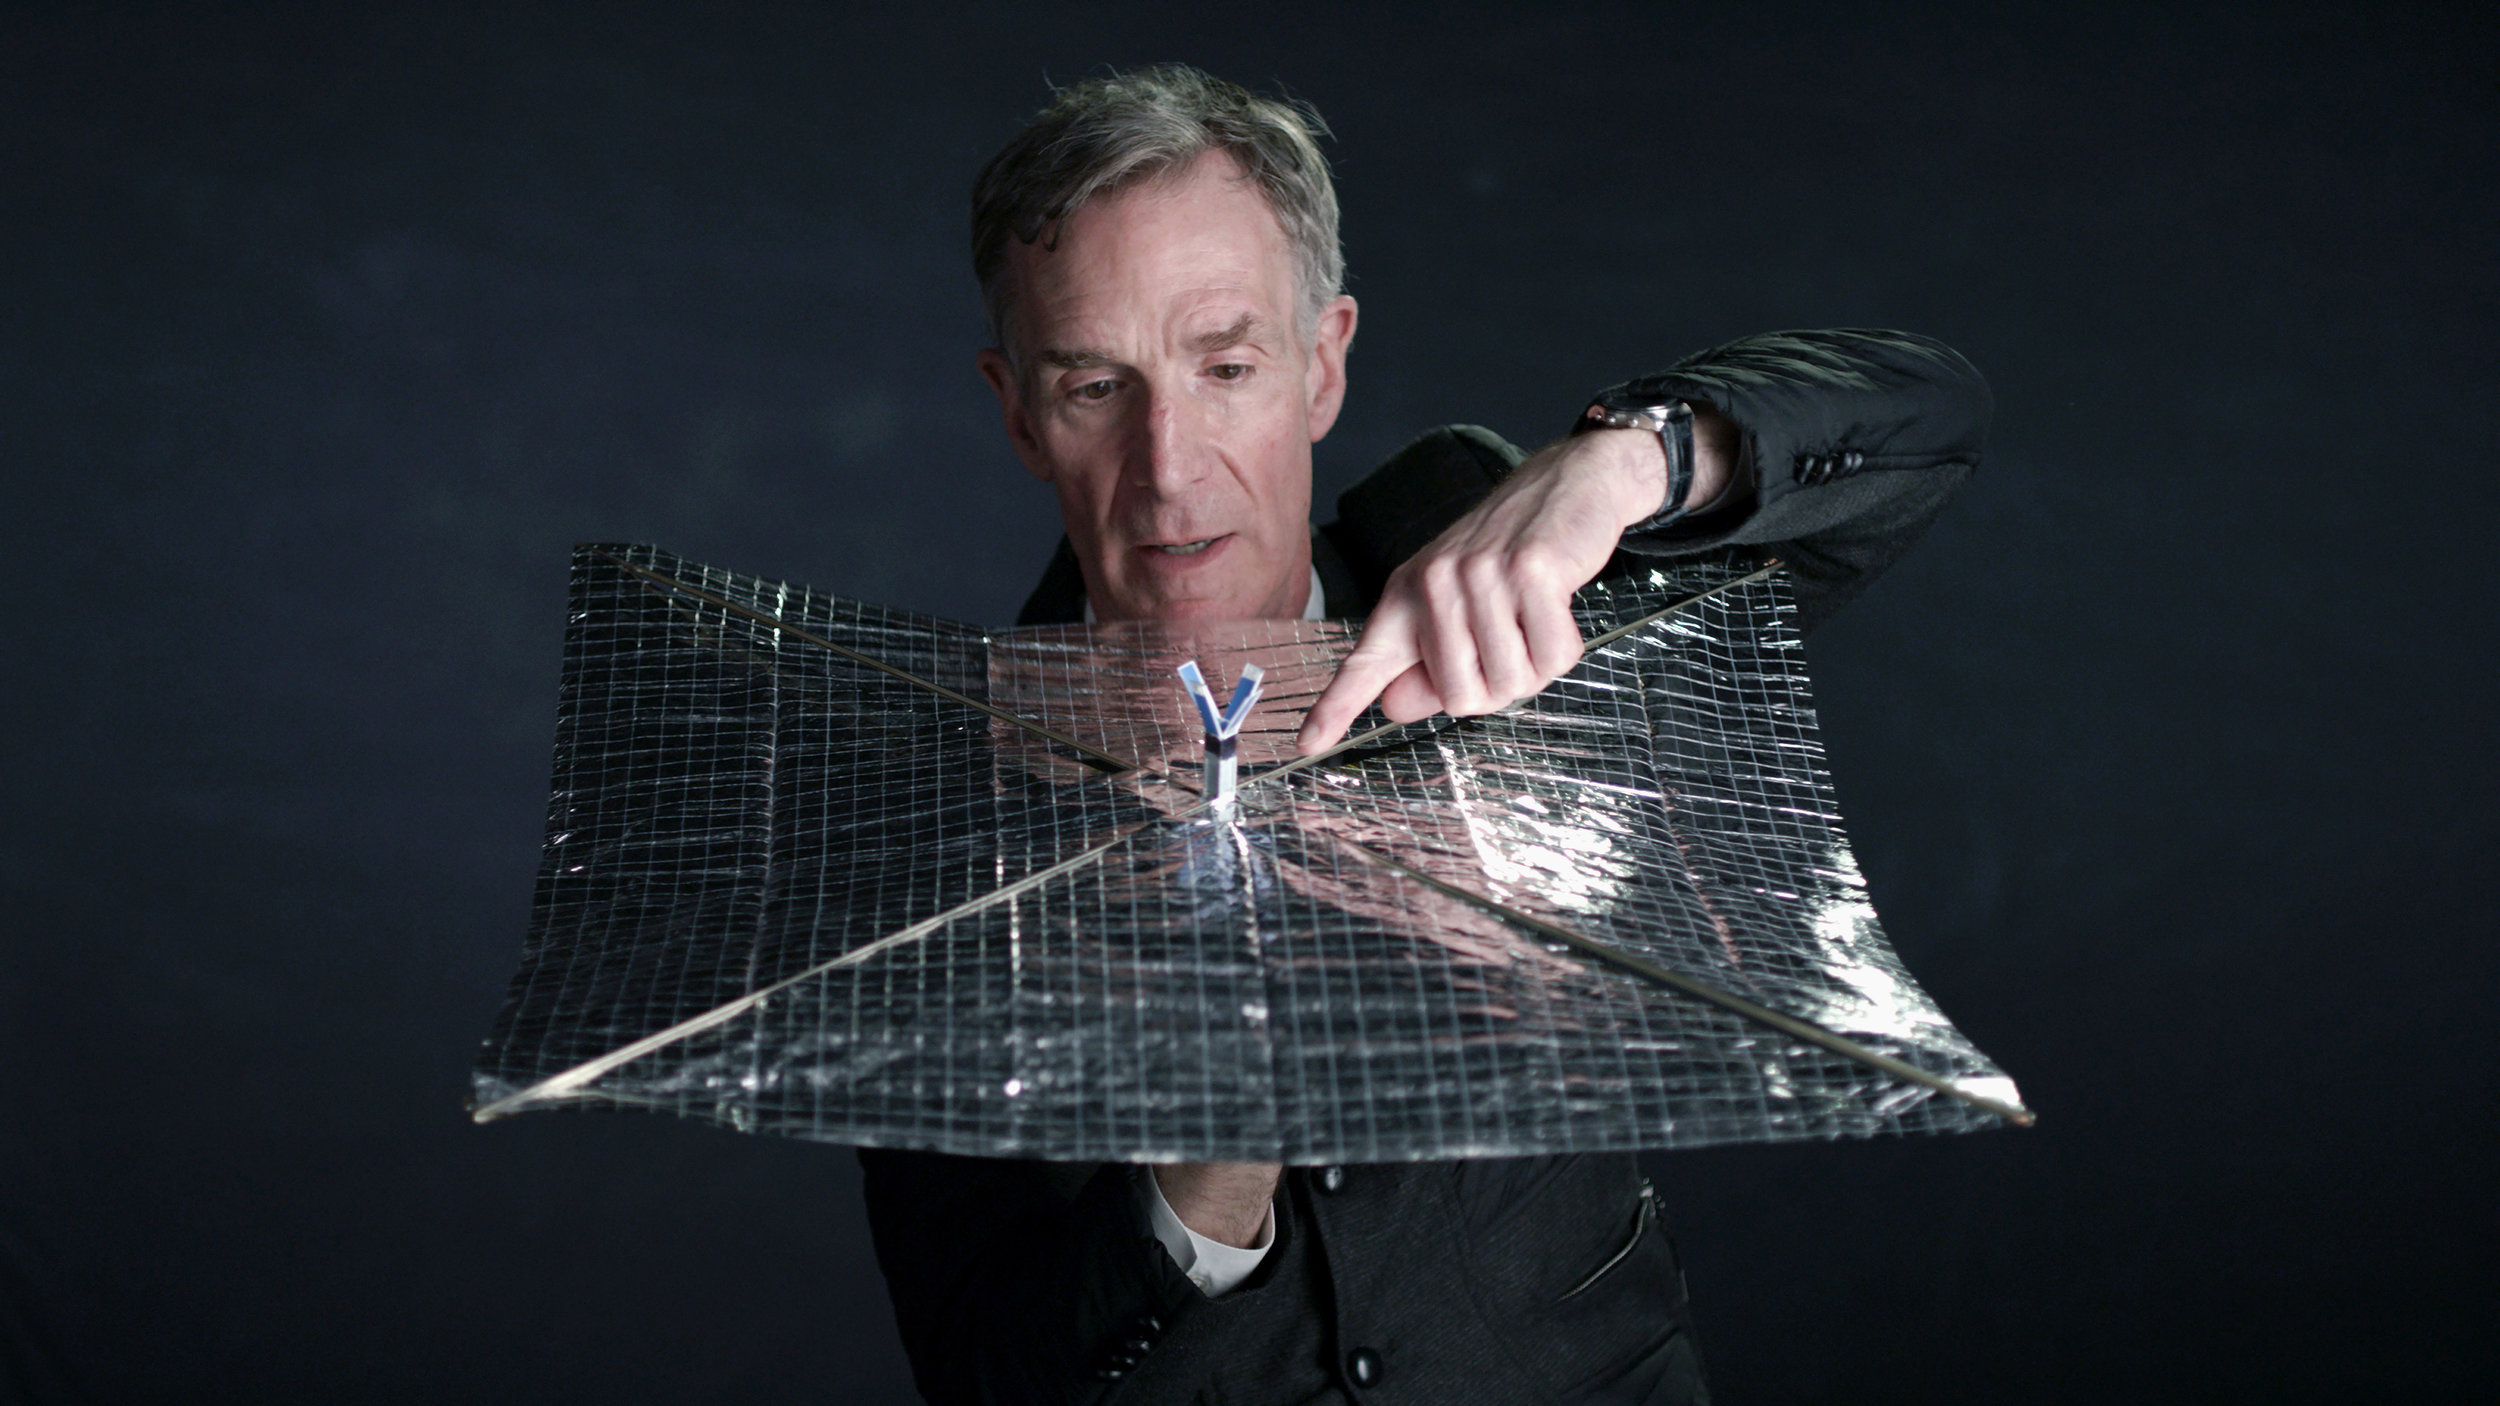 #1 - Bill Nye in BILL NYE SCIENCE GUY, a PBS Distribution release. Image courtesy of Lindsay Mann/Structure Films